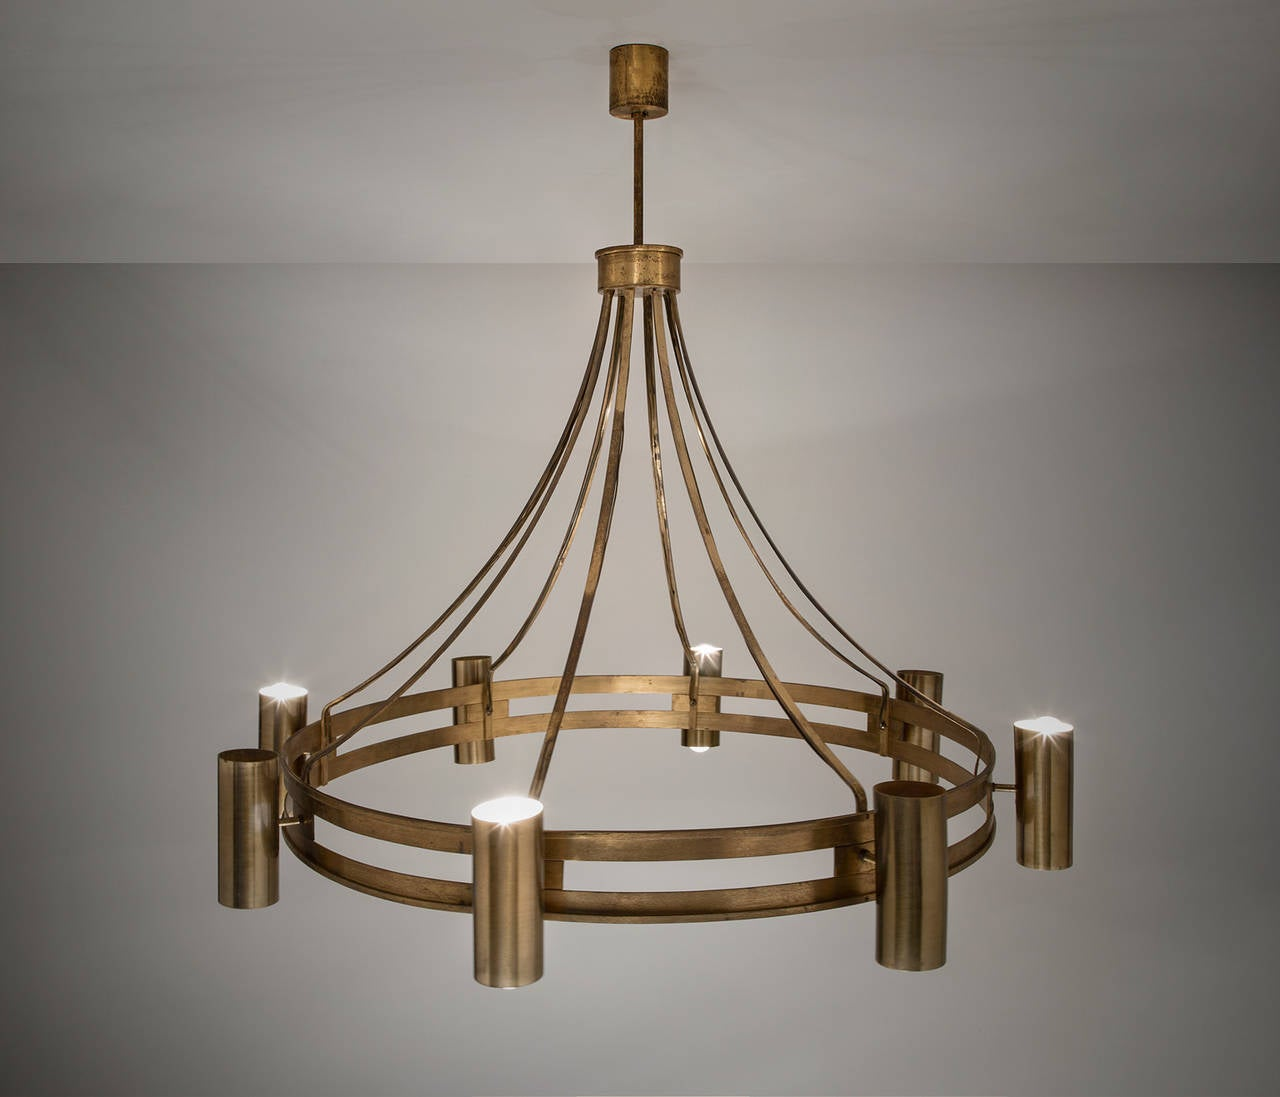 Ceiling Lights Very : Set of two very large brass ceiling lights at stdibs